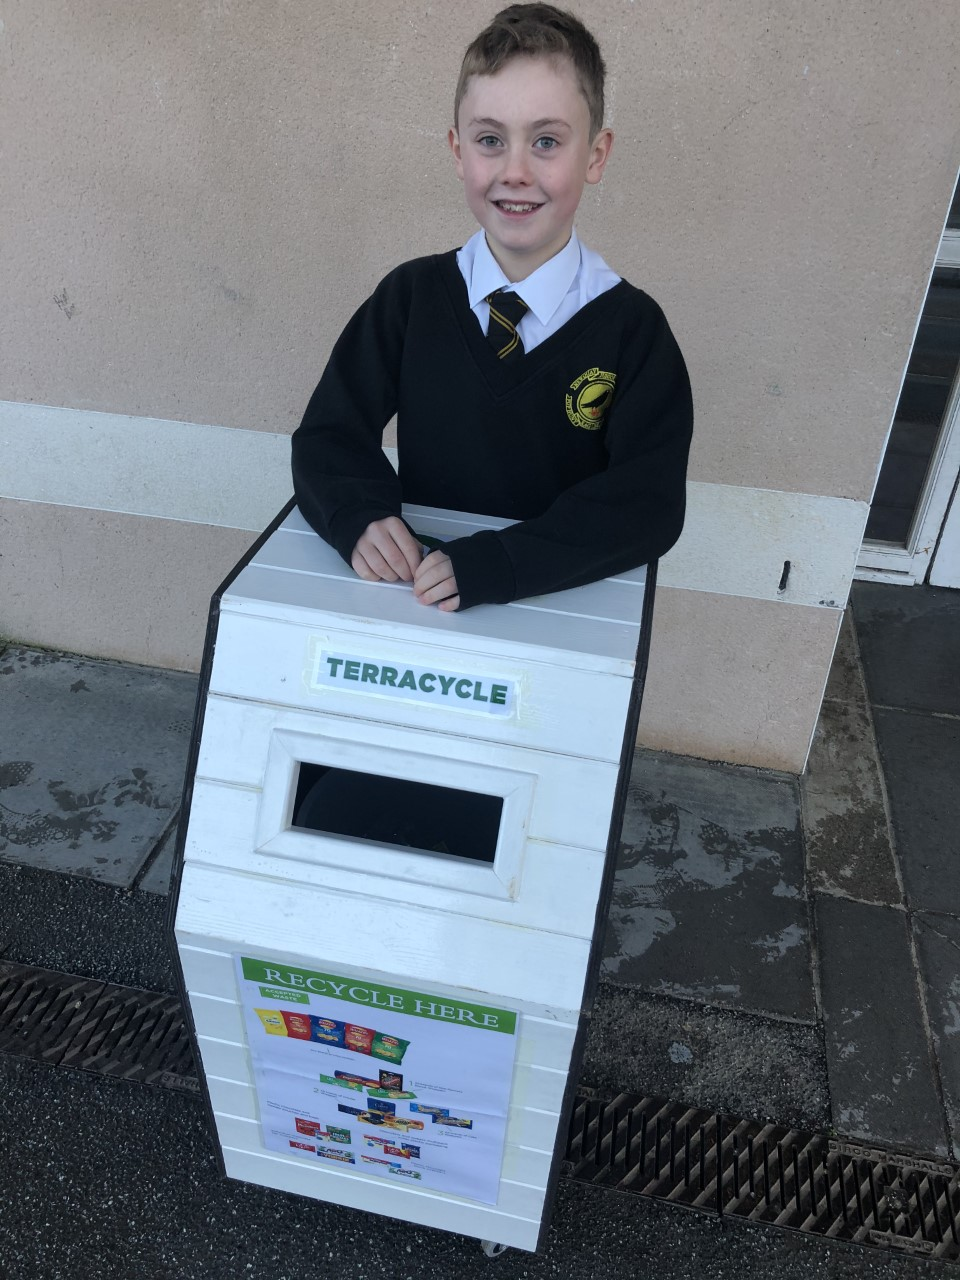 TerraCycle Bin